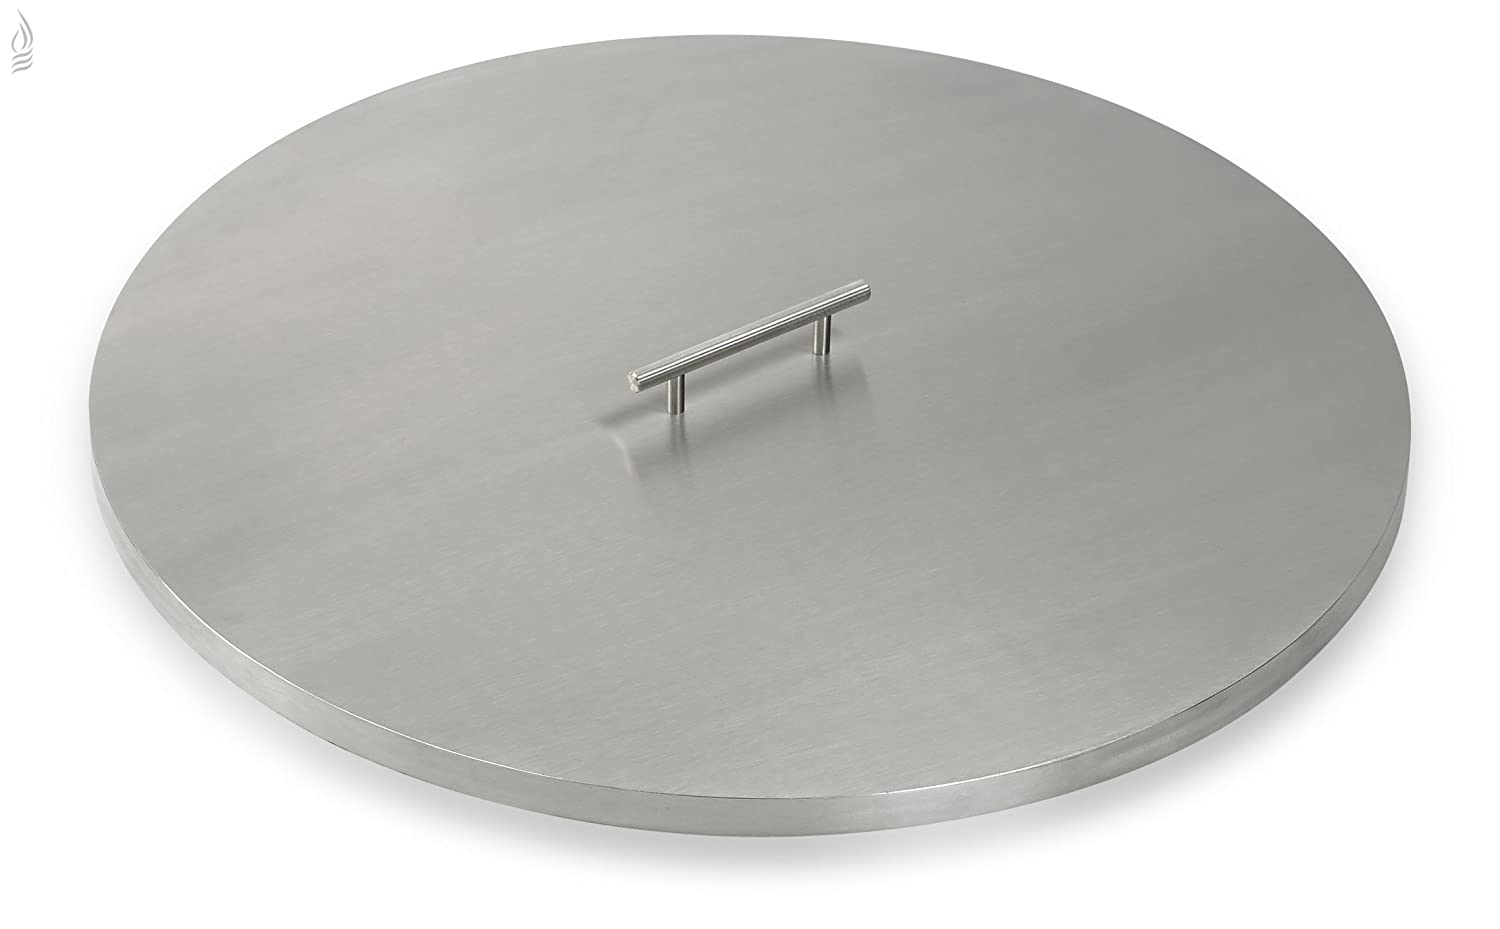 Amazon.com : American Fireglass Stainless Steel Fire Pit Pan Covers Round  (19 Inch) : Garden & Outdoor - Amazon.com : American Fireglass Stainless Steel Fire Pit Pan Covers